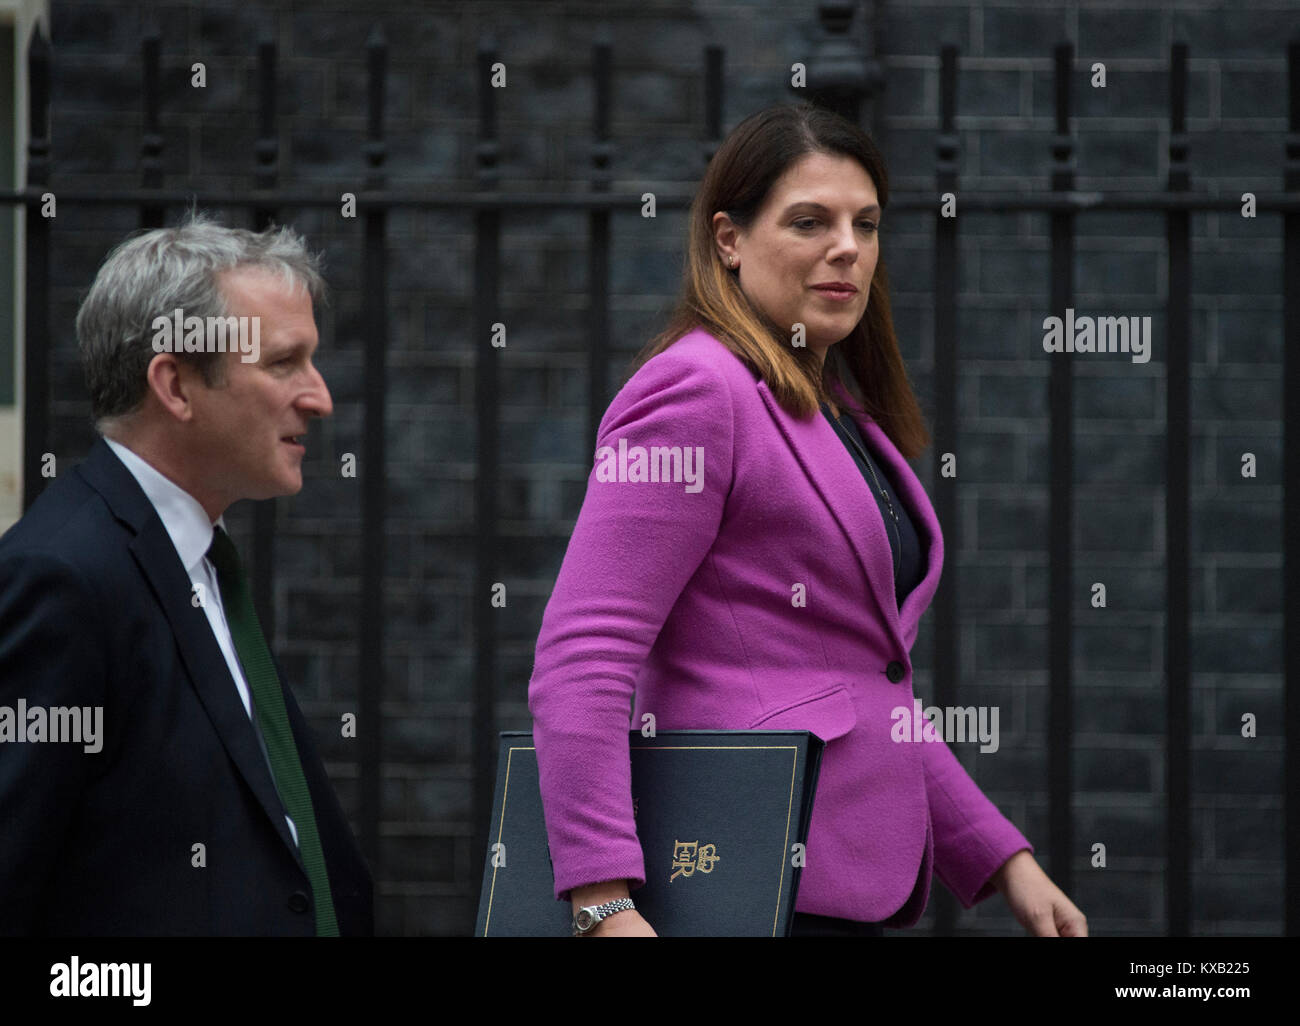 Downing Street, London, UK. 9th Jan, 2018. Government ministers old and new in Downing Street for weekly cabinet - Stock Image